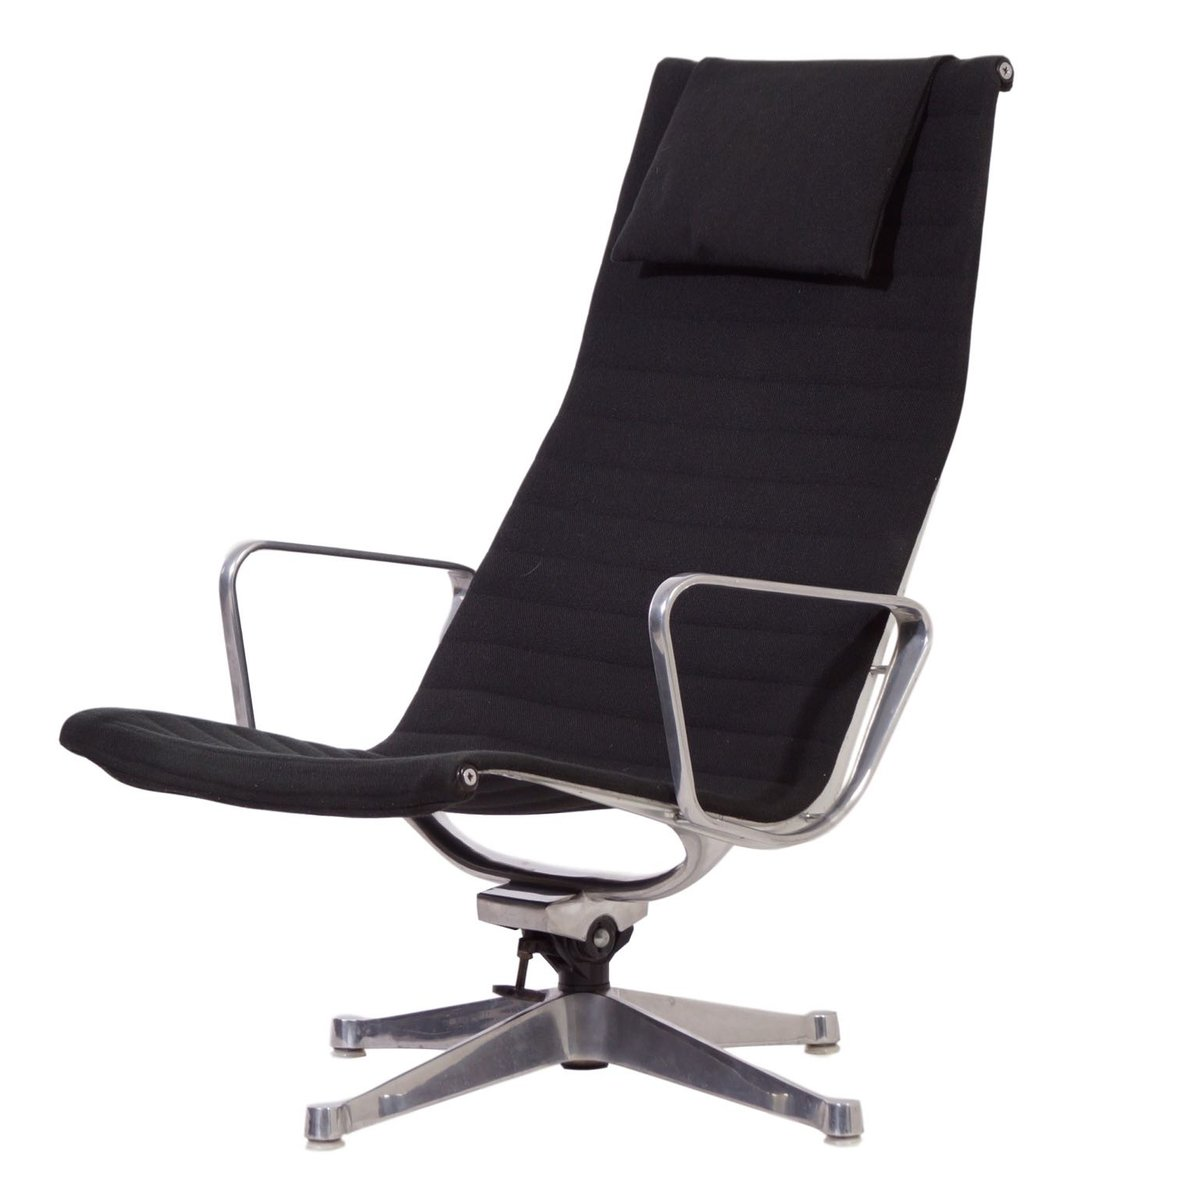 Eanes Chair Ea124 Lounge Chair By Charles And Ray Eames For Herman Miller 1958